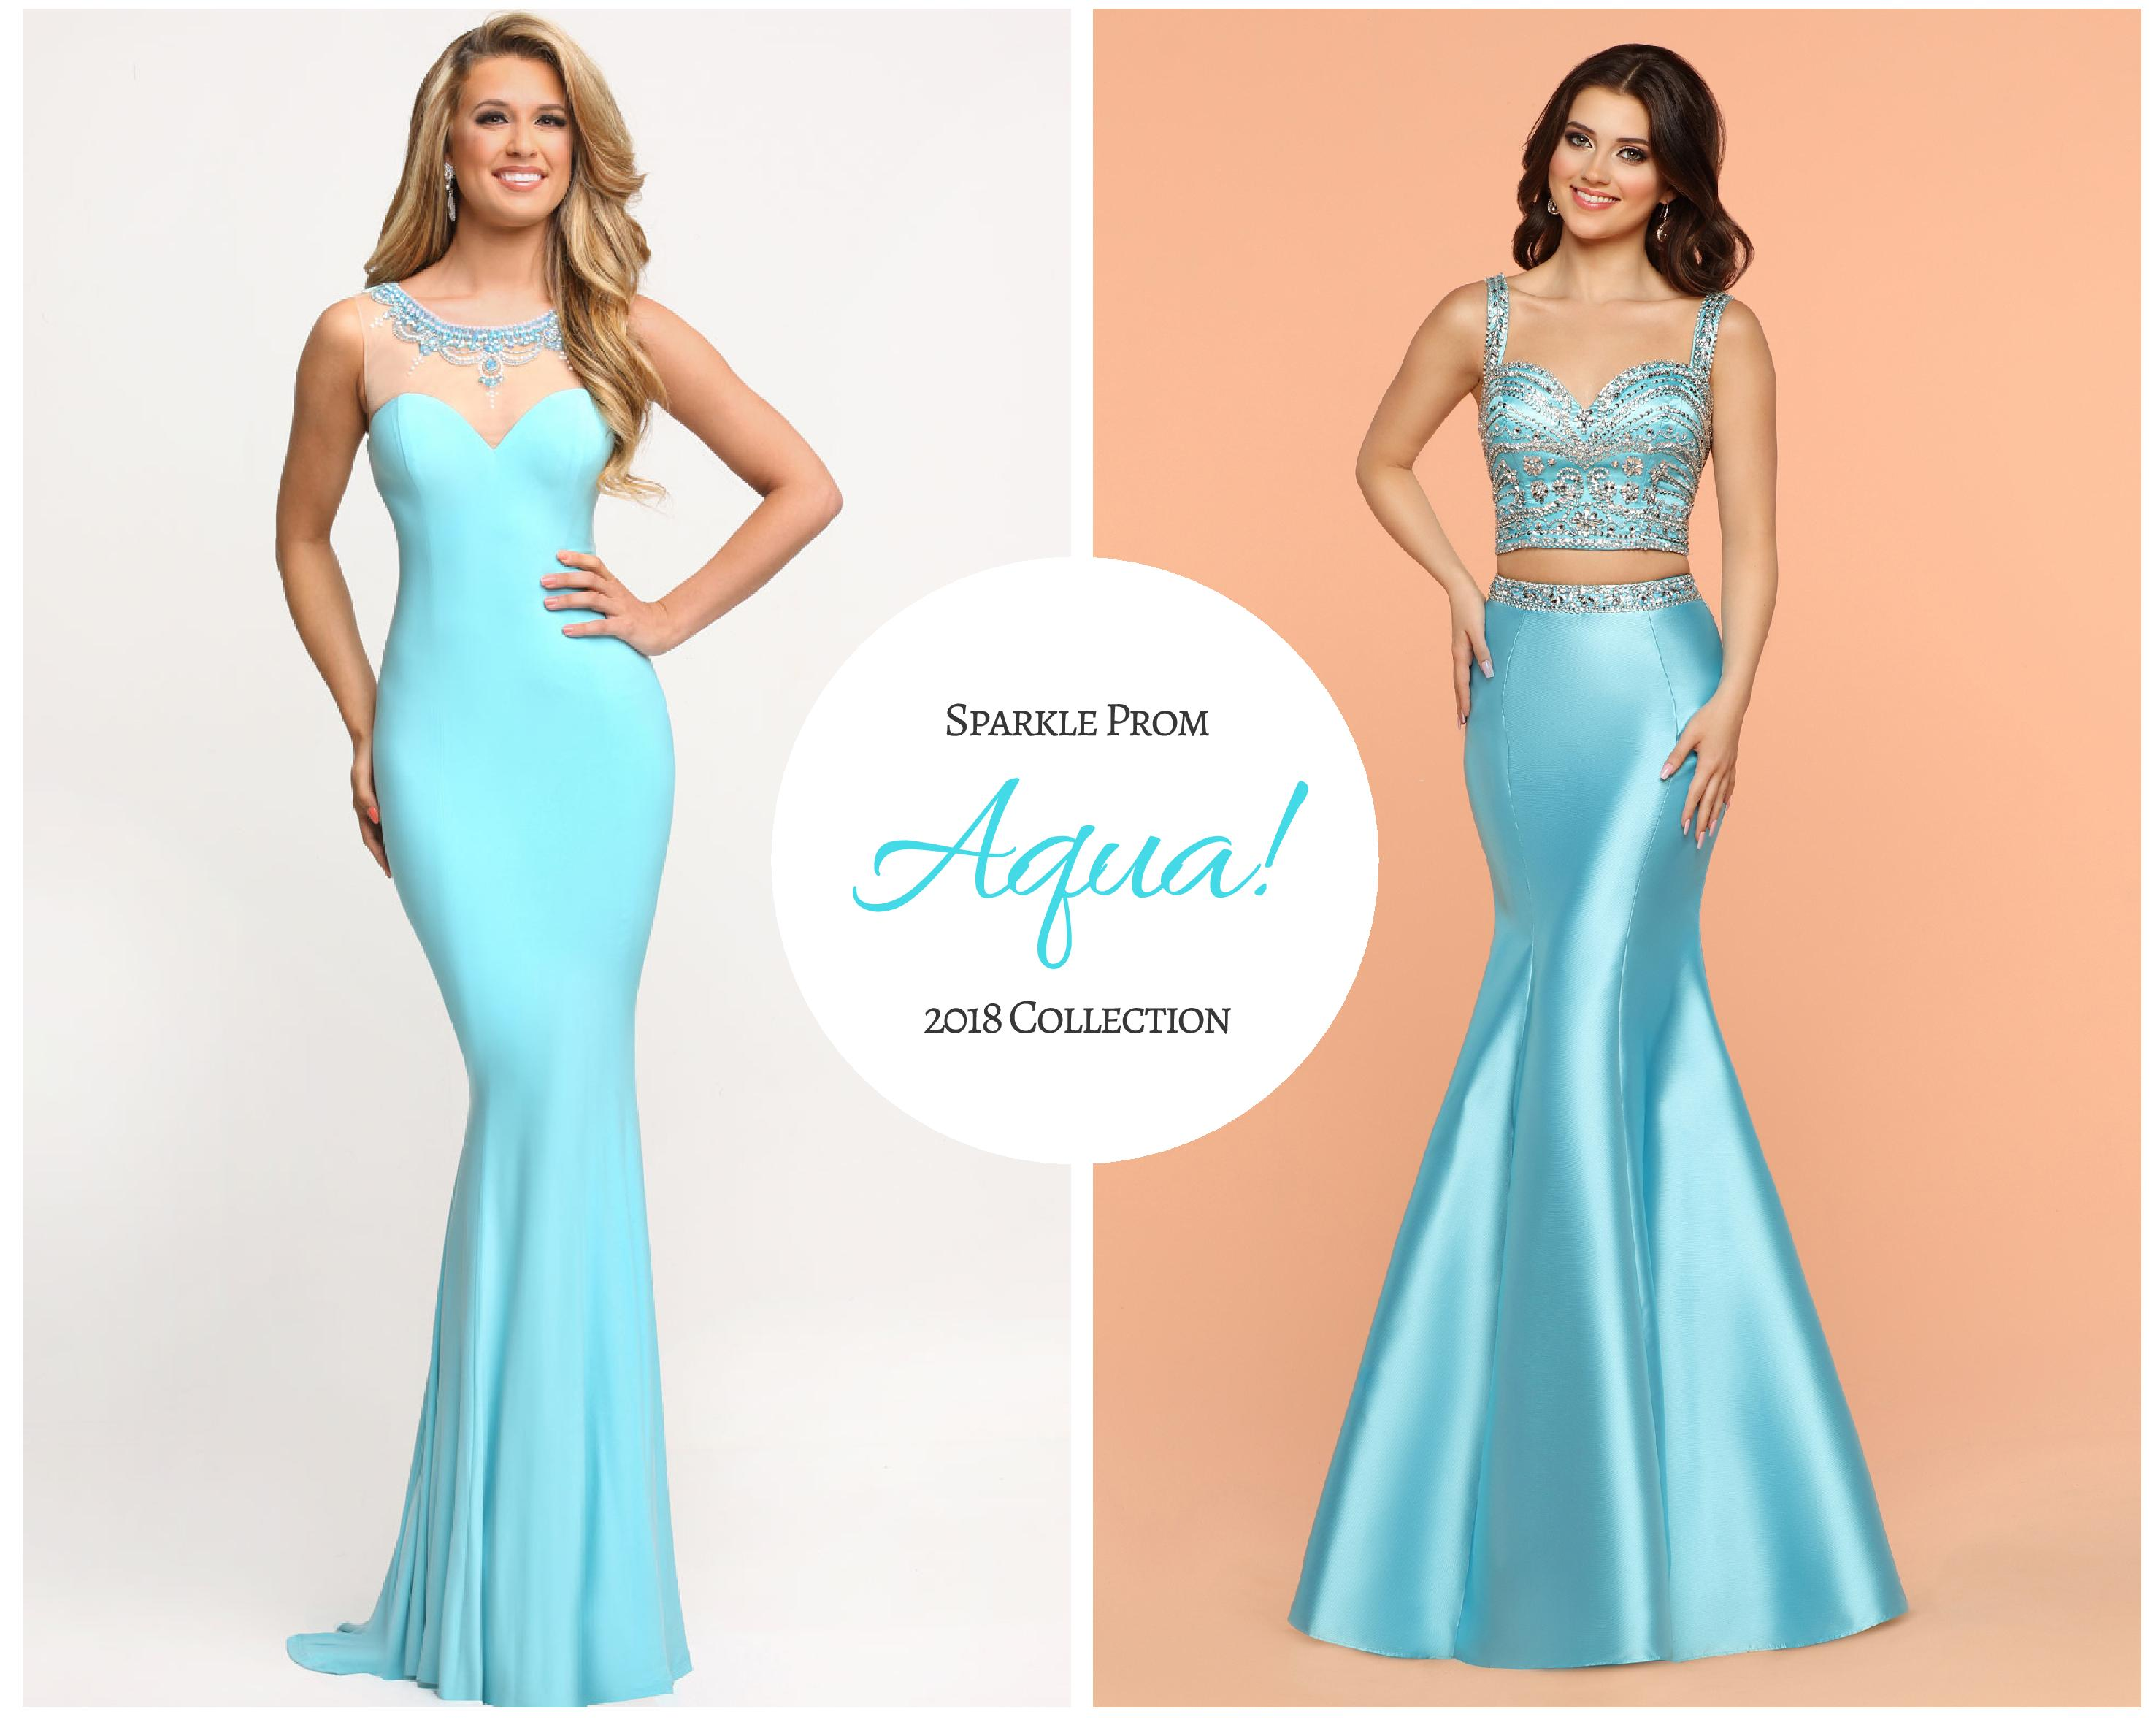 2018 Sparkle Prom Girl Color Collection: Bright Turquoise & Soft Aqua